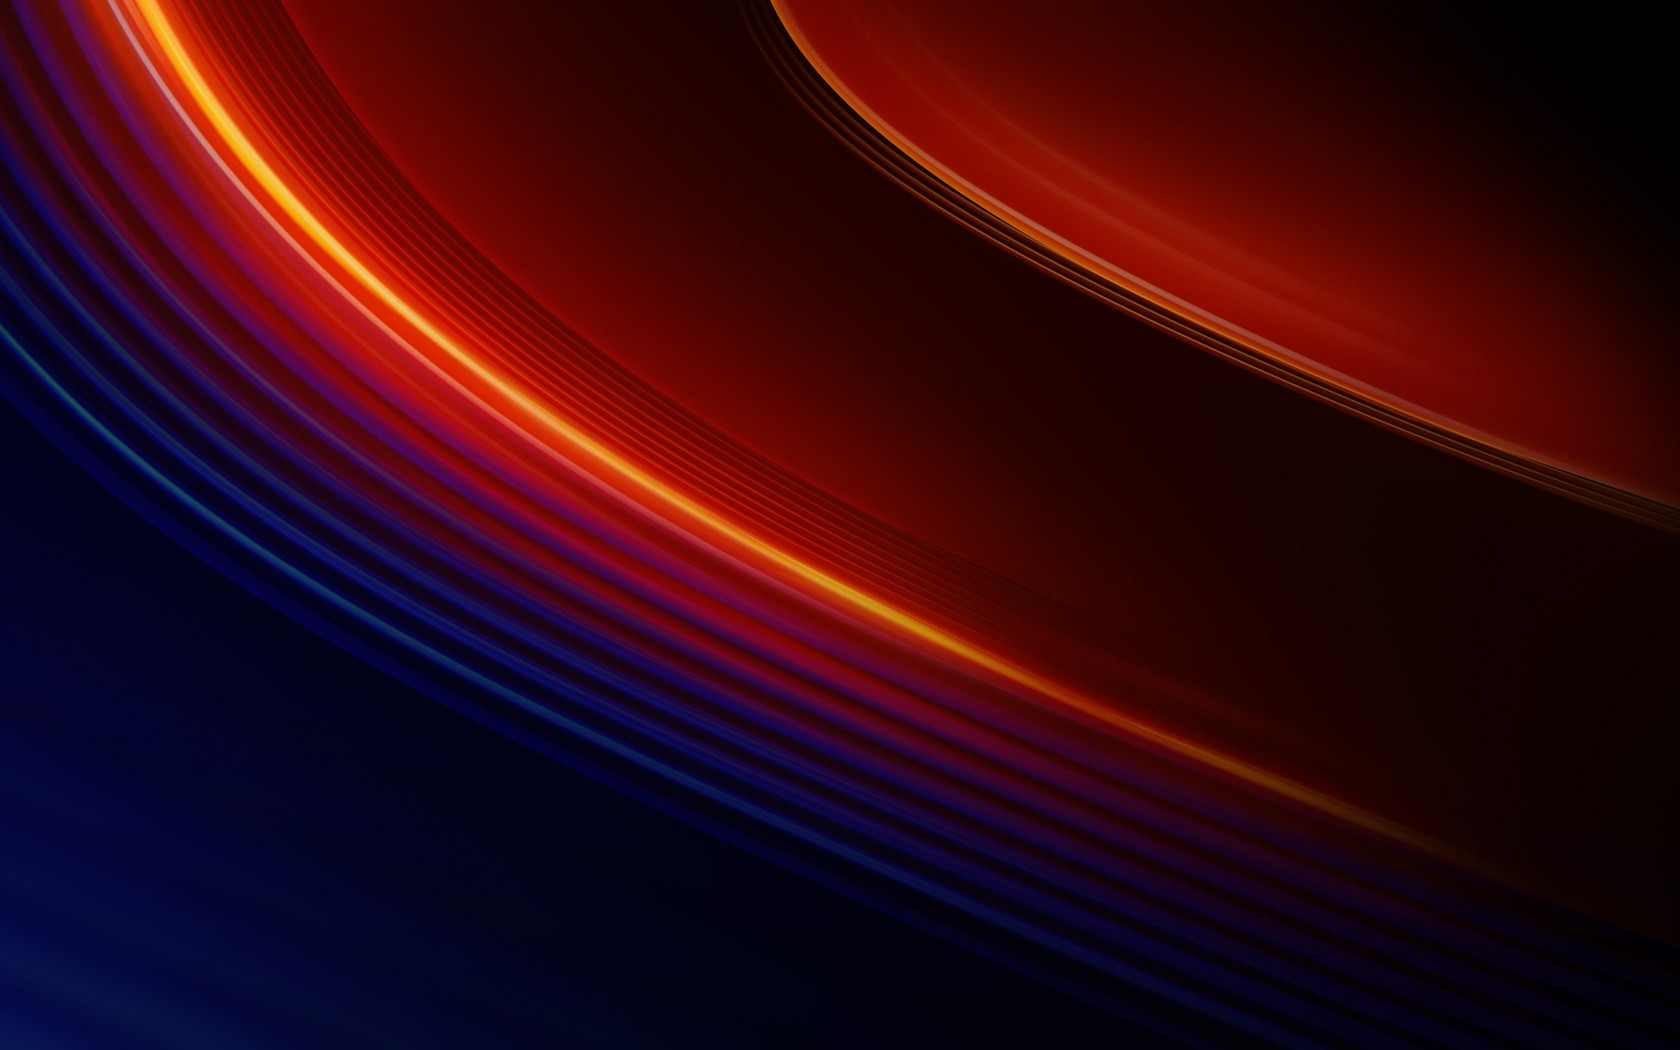 OnePlus 7T Pro warm lines wallpaper 1680x1050